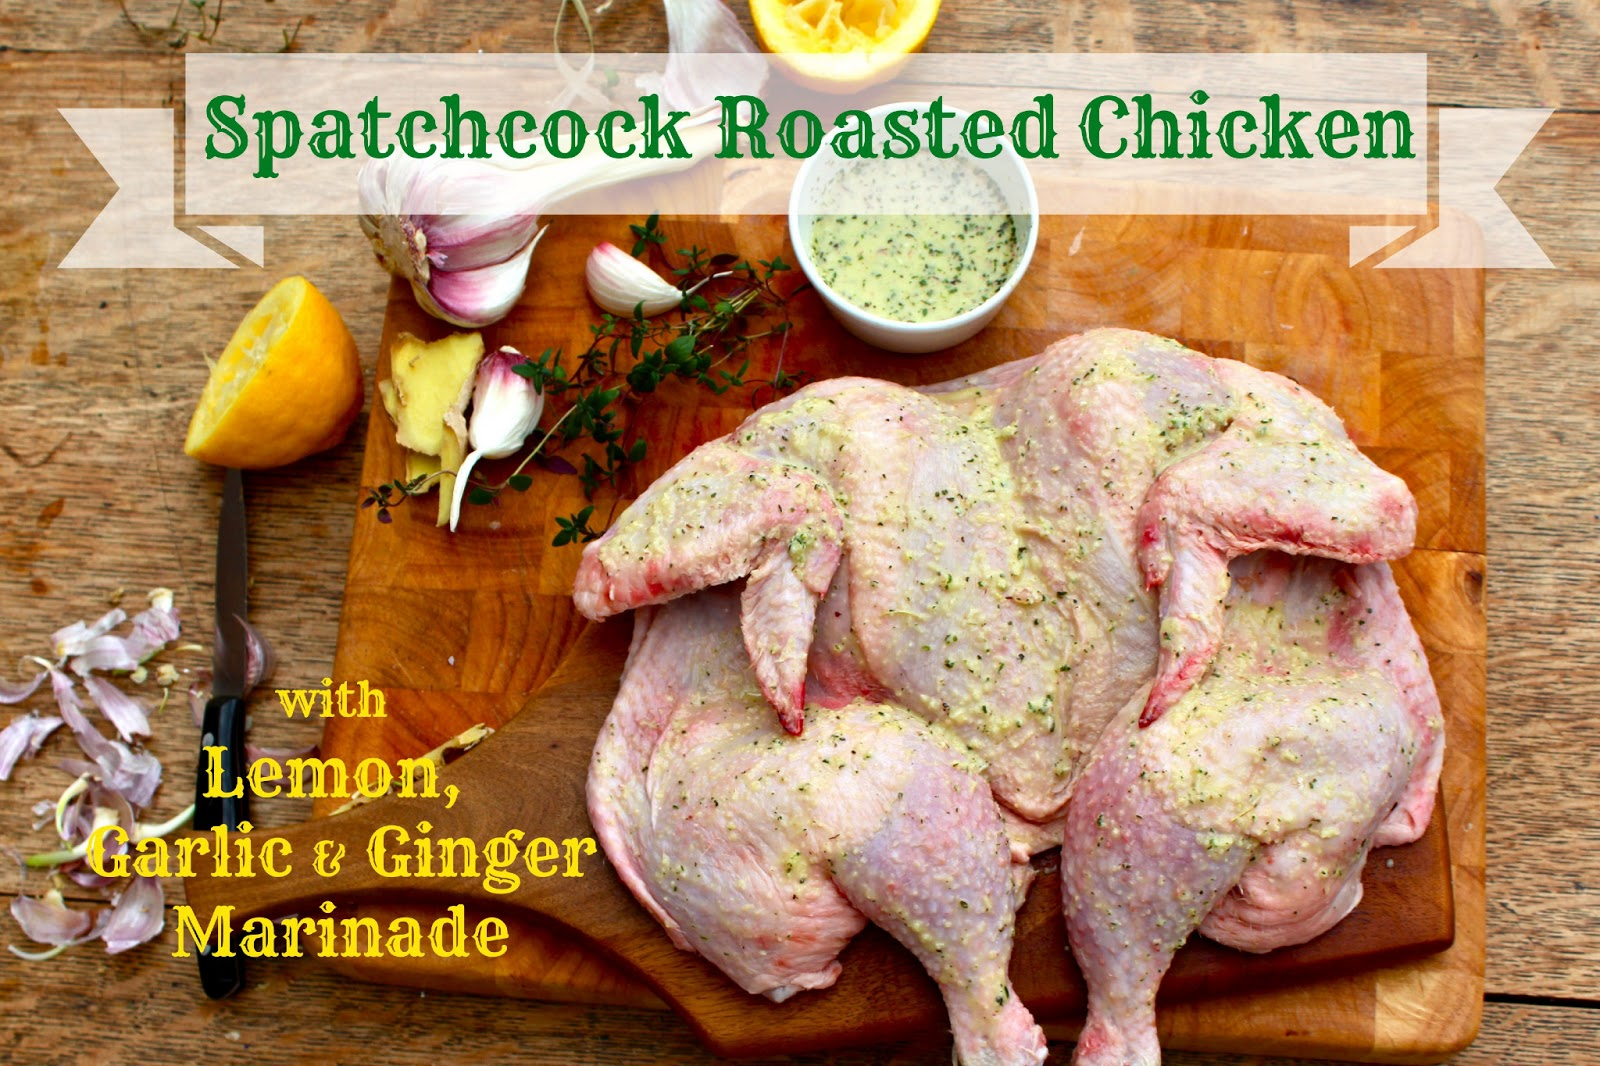 Spatchcock Roasted Chicken with Lemon, Garlic, and Ginger Marinade